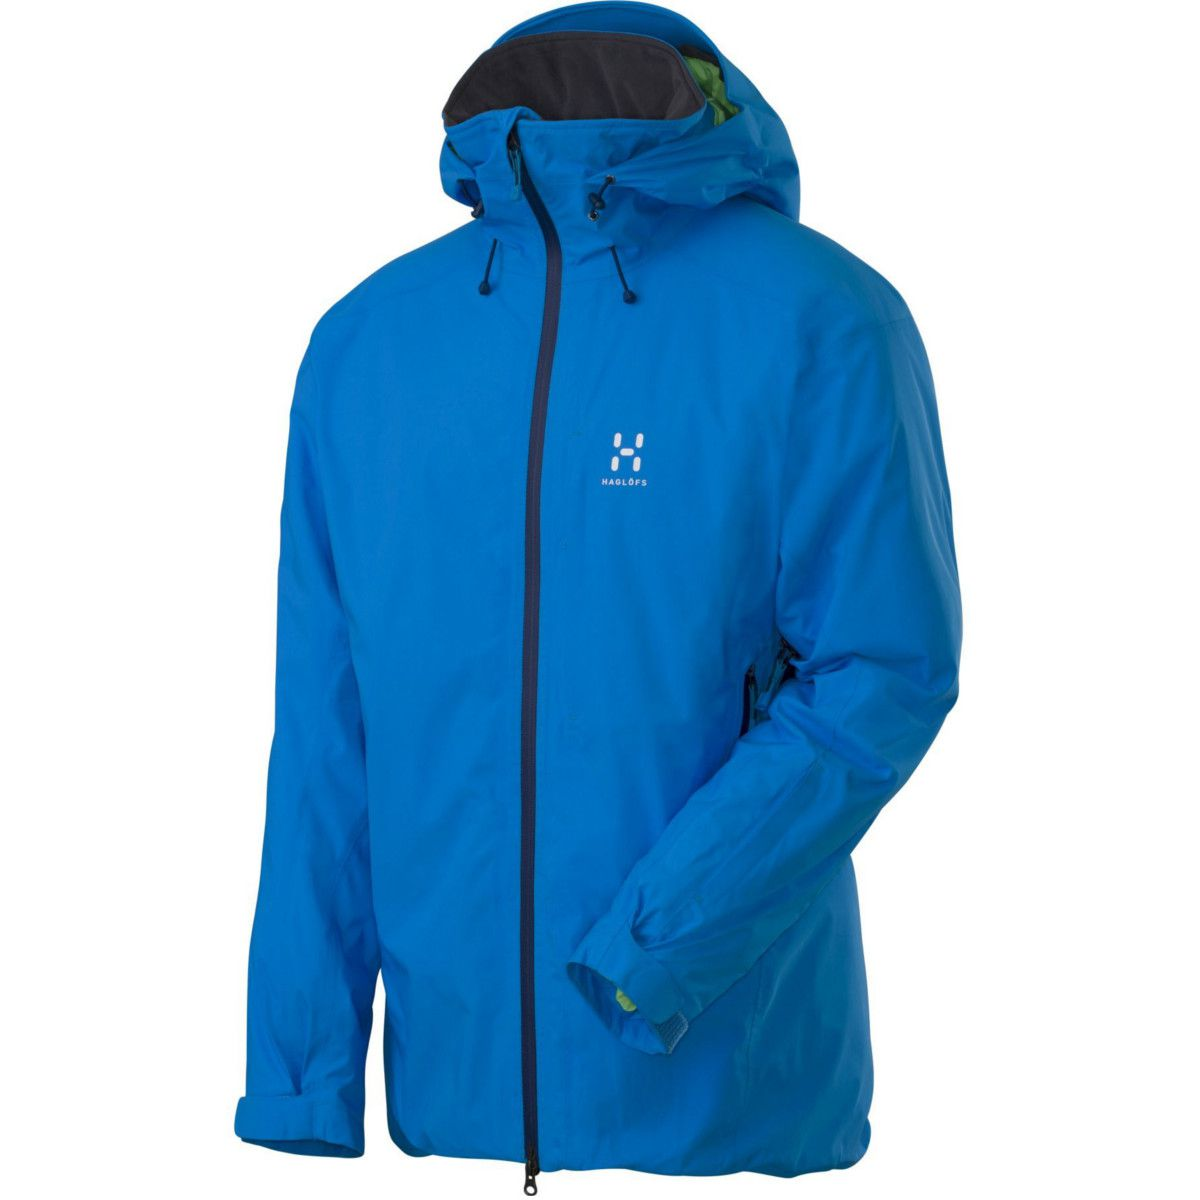 Haglofs Skra Jacket Gale Blue-30